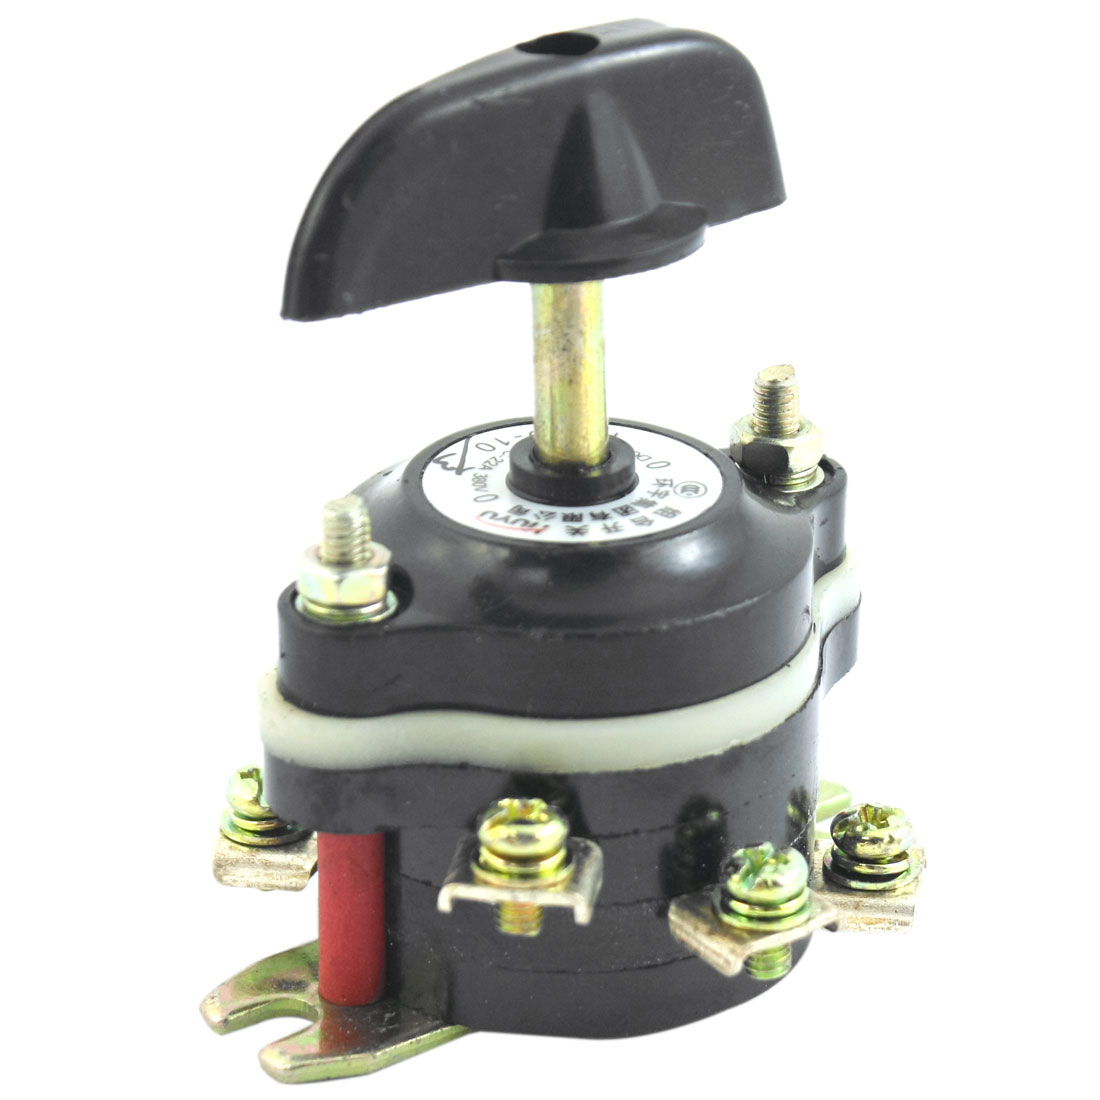 HZ10-10/3 DC220V 21A AC380V 22A 6 Screw Terminals 4-Position 3-Pole Rotary Selector Changover Switch